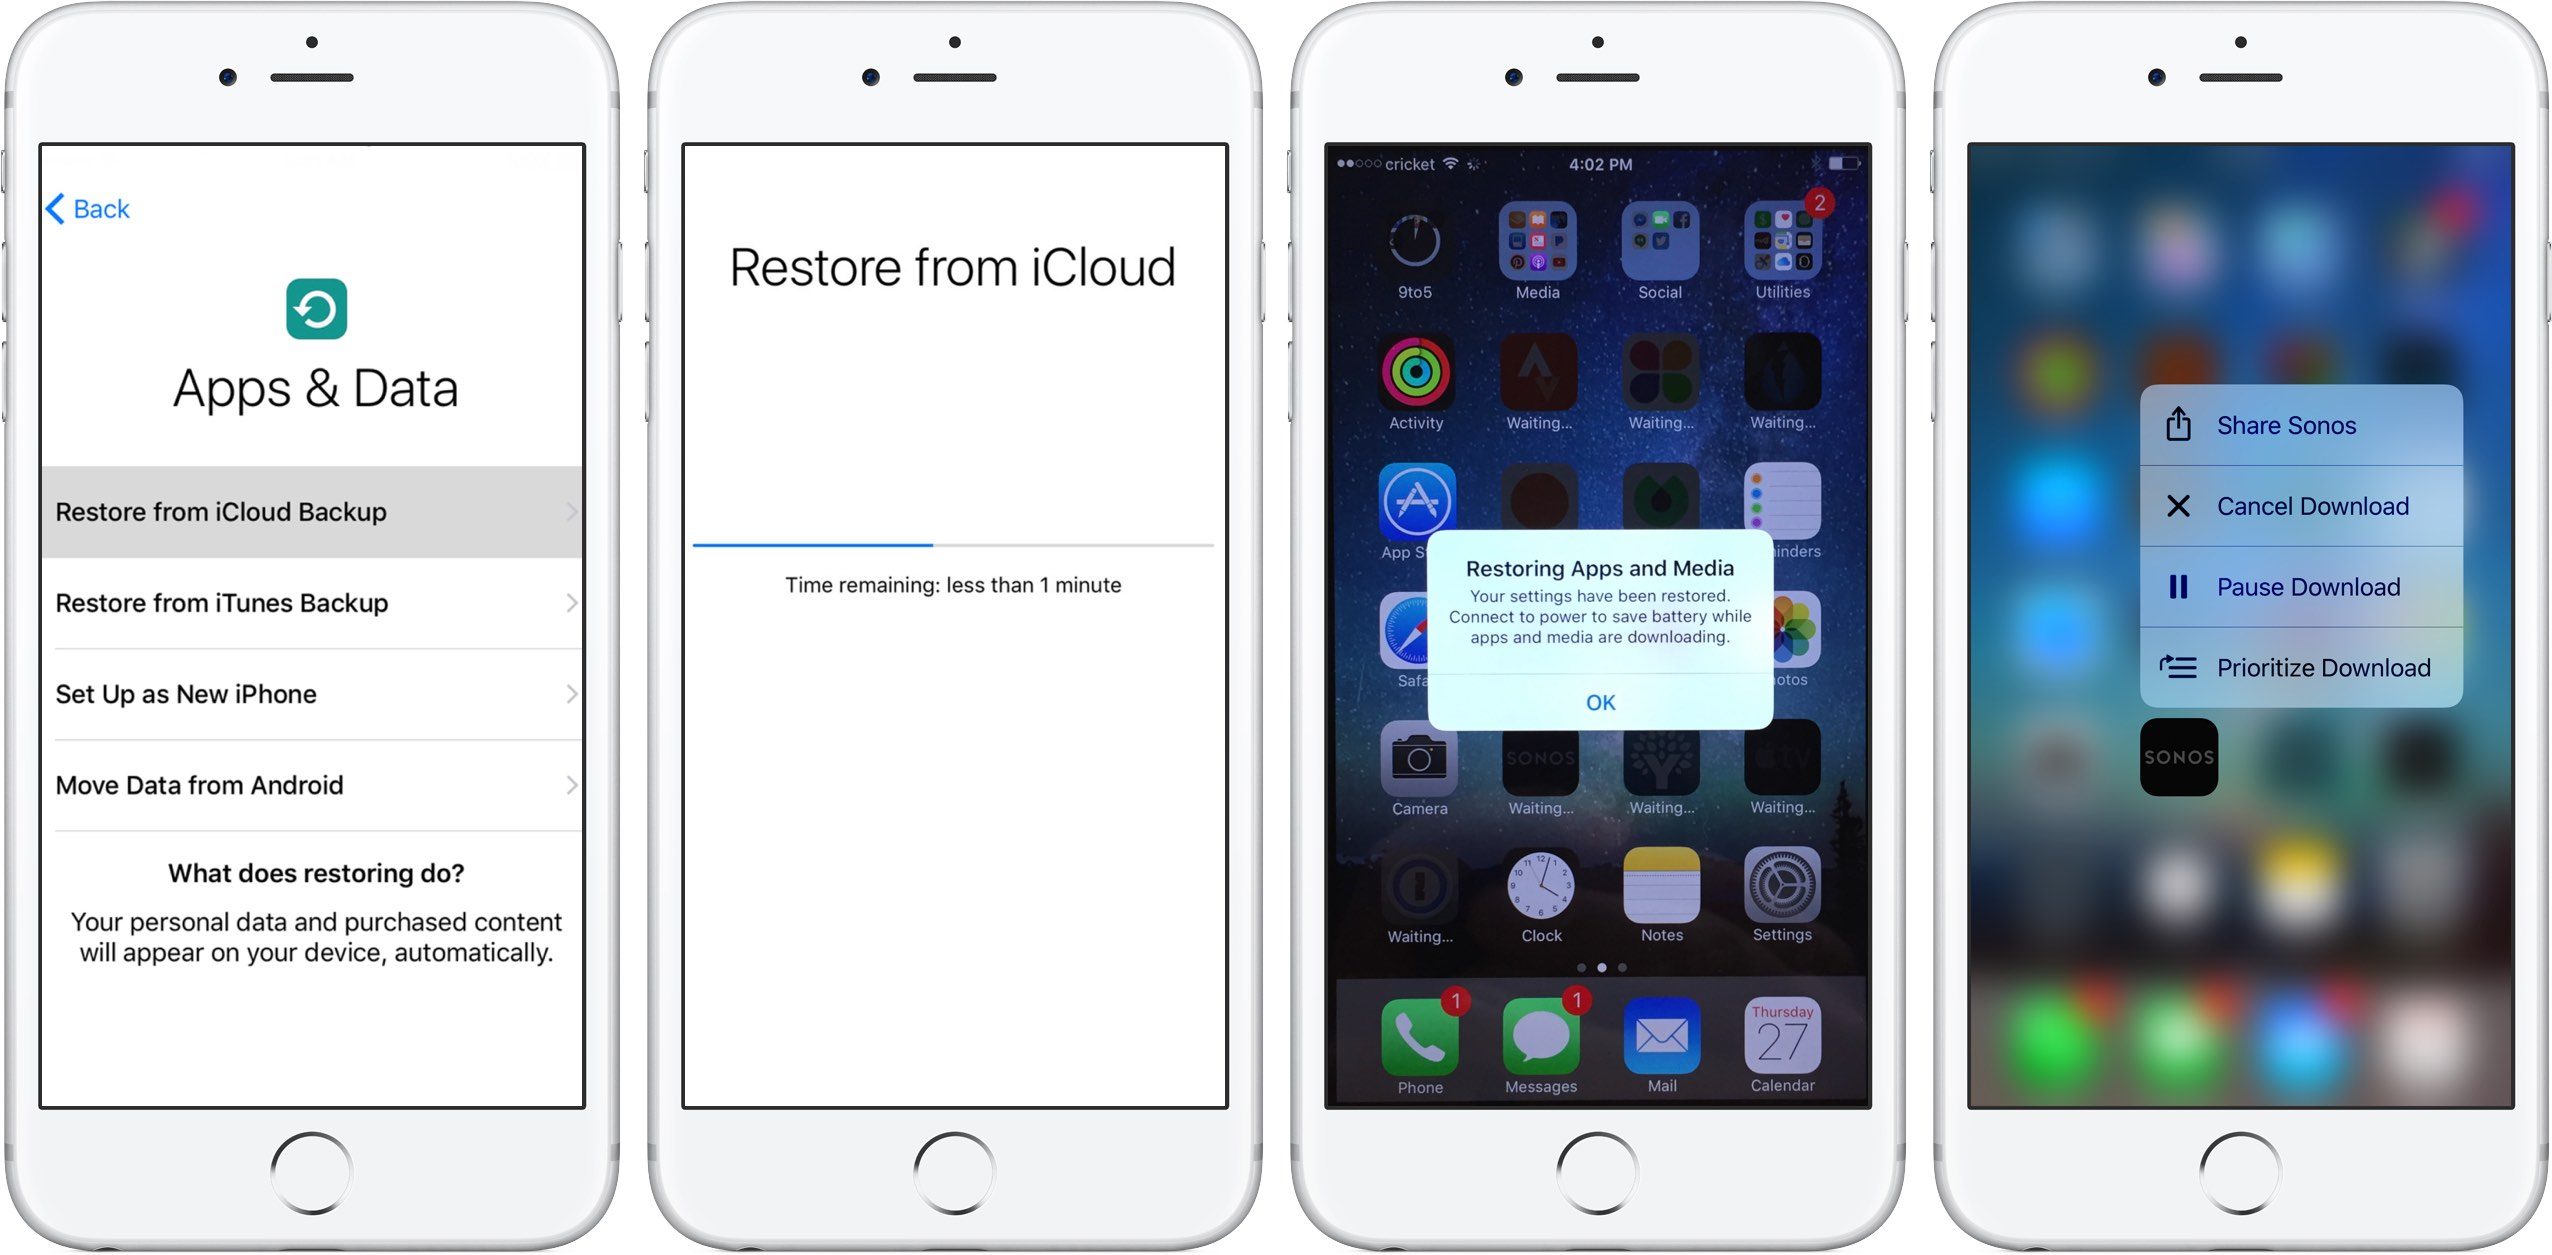 Image showing the process of restoring an iPhone from iCloud backup